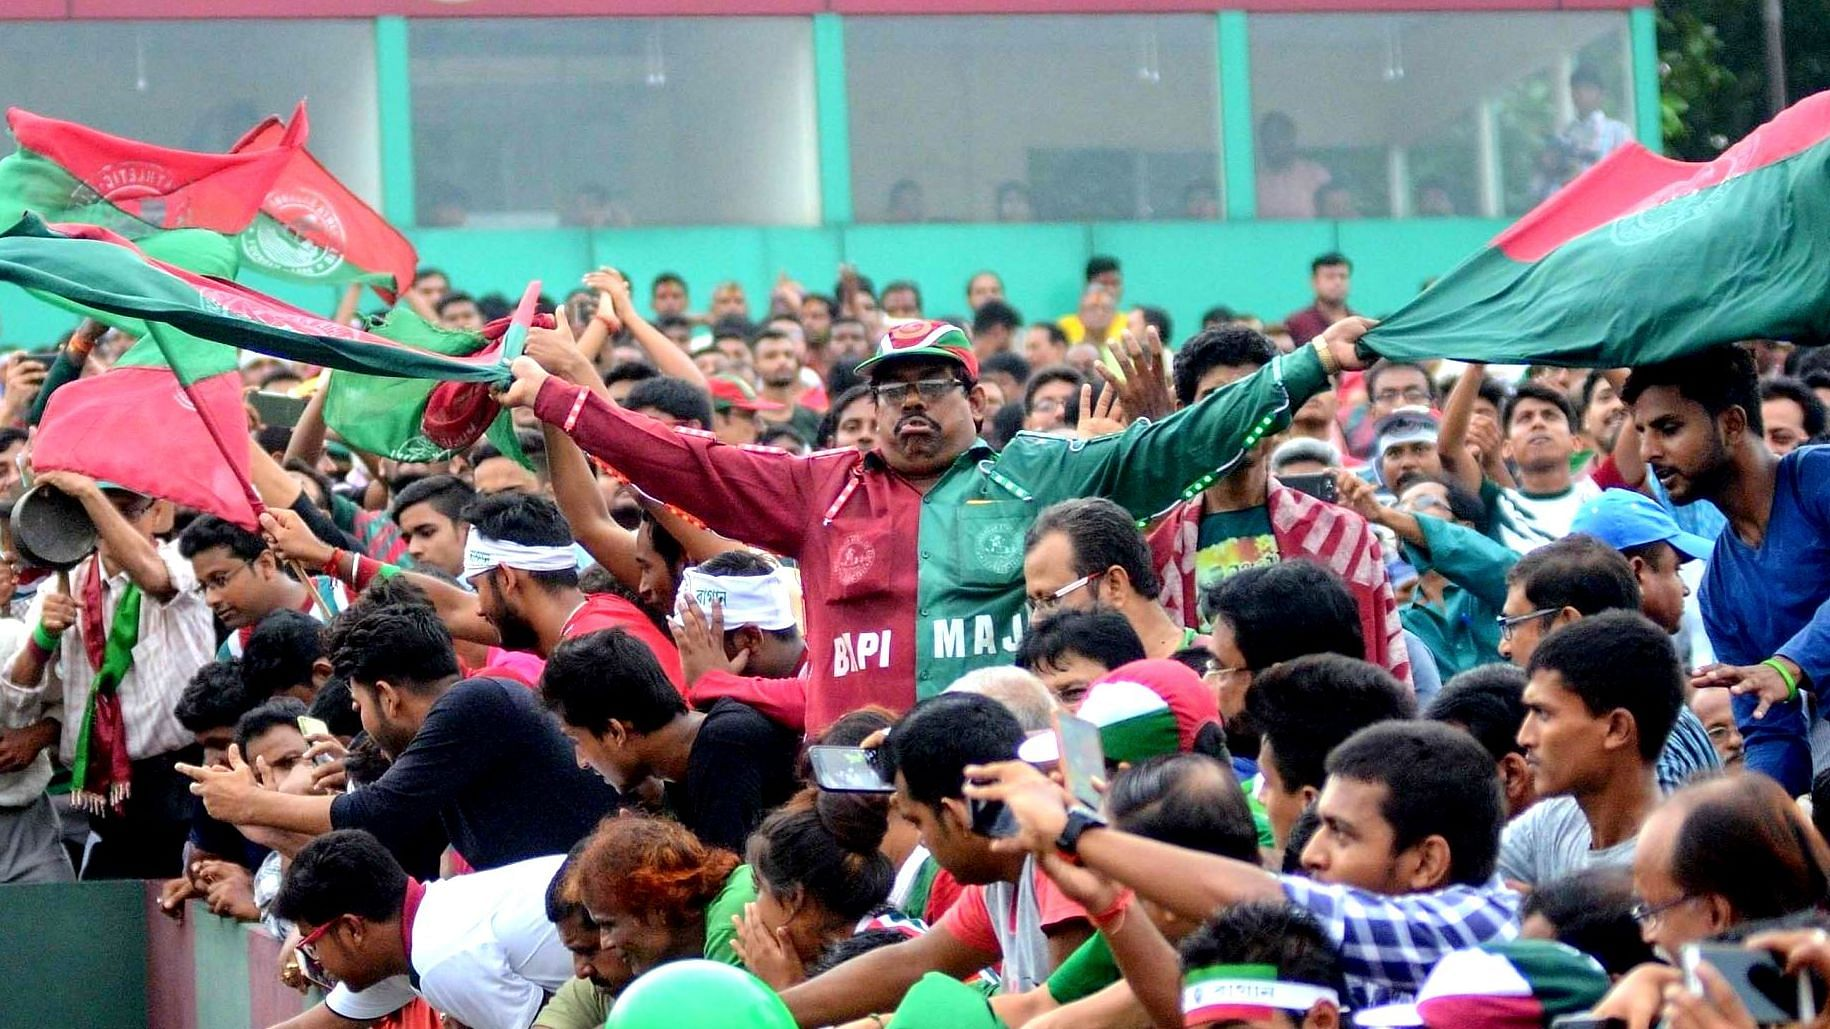 Mohun Bagan's ATK Merger – What Do the Fans Think?